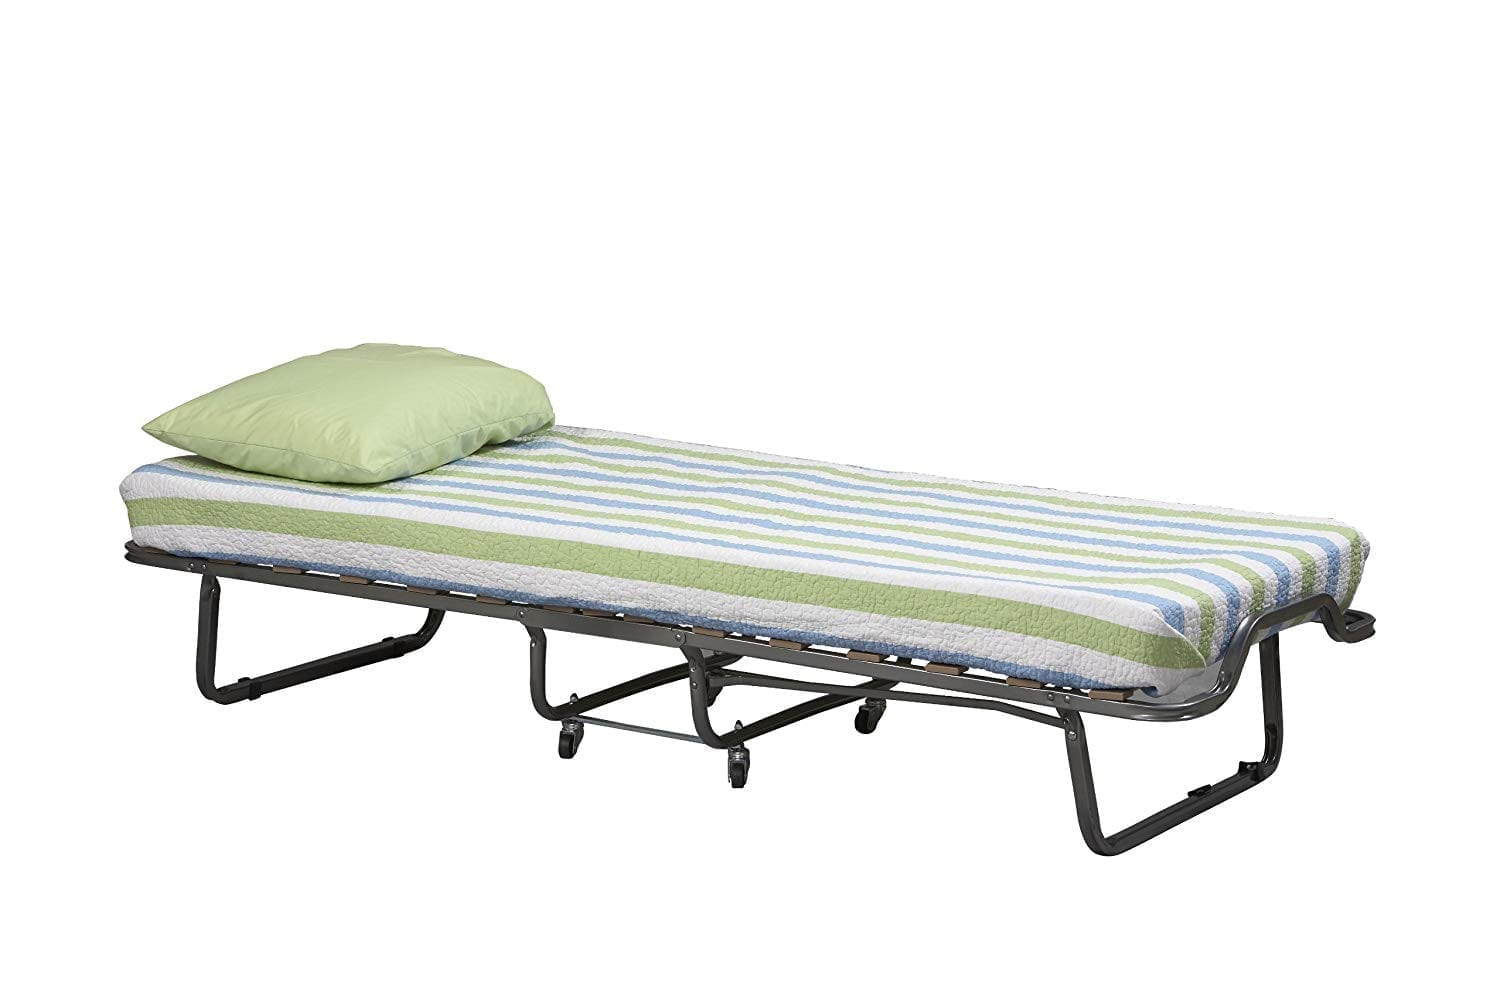 Folding Bed By Linon Home Décor